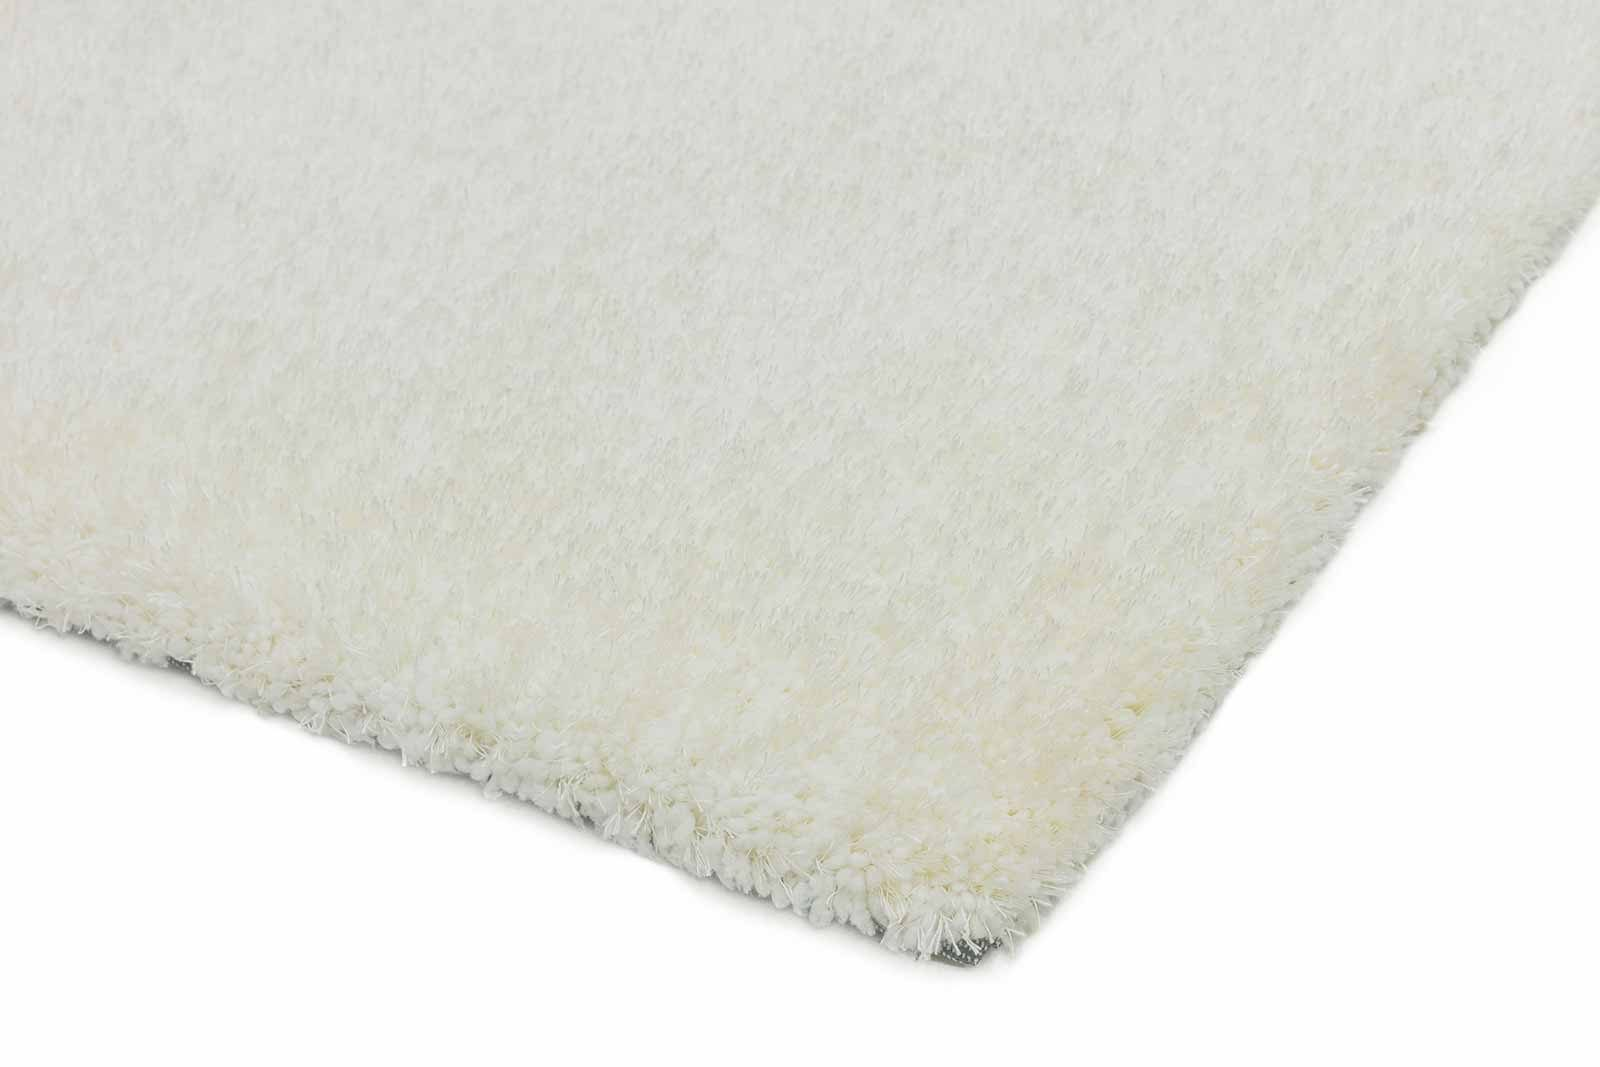 Andessi rug Mythica White detail 2